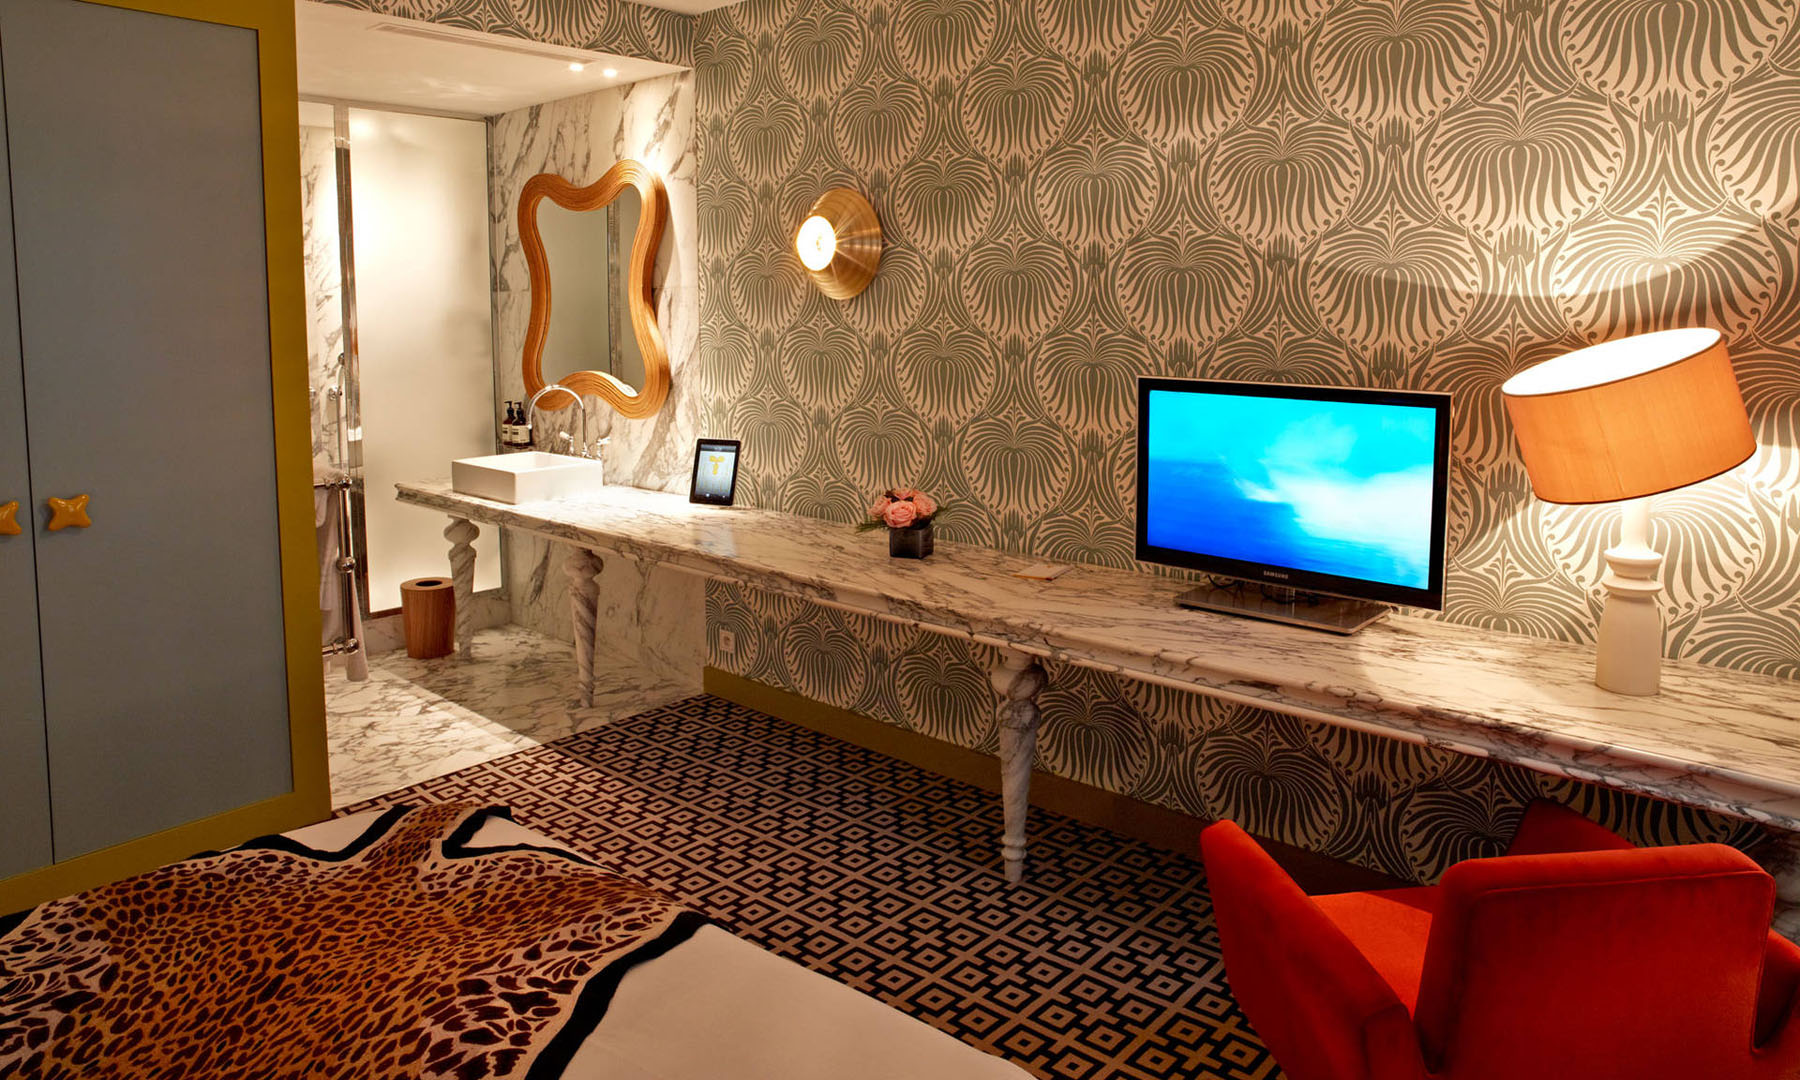 French Art Deco Interior Design By India Mahdavi At Hotel